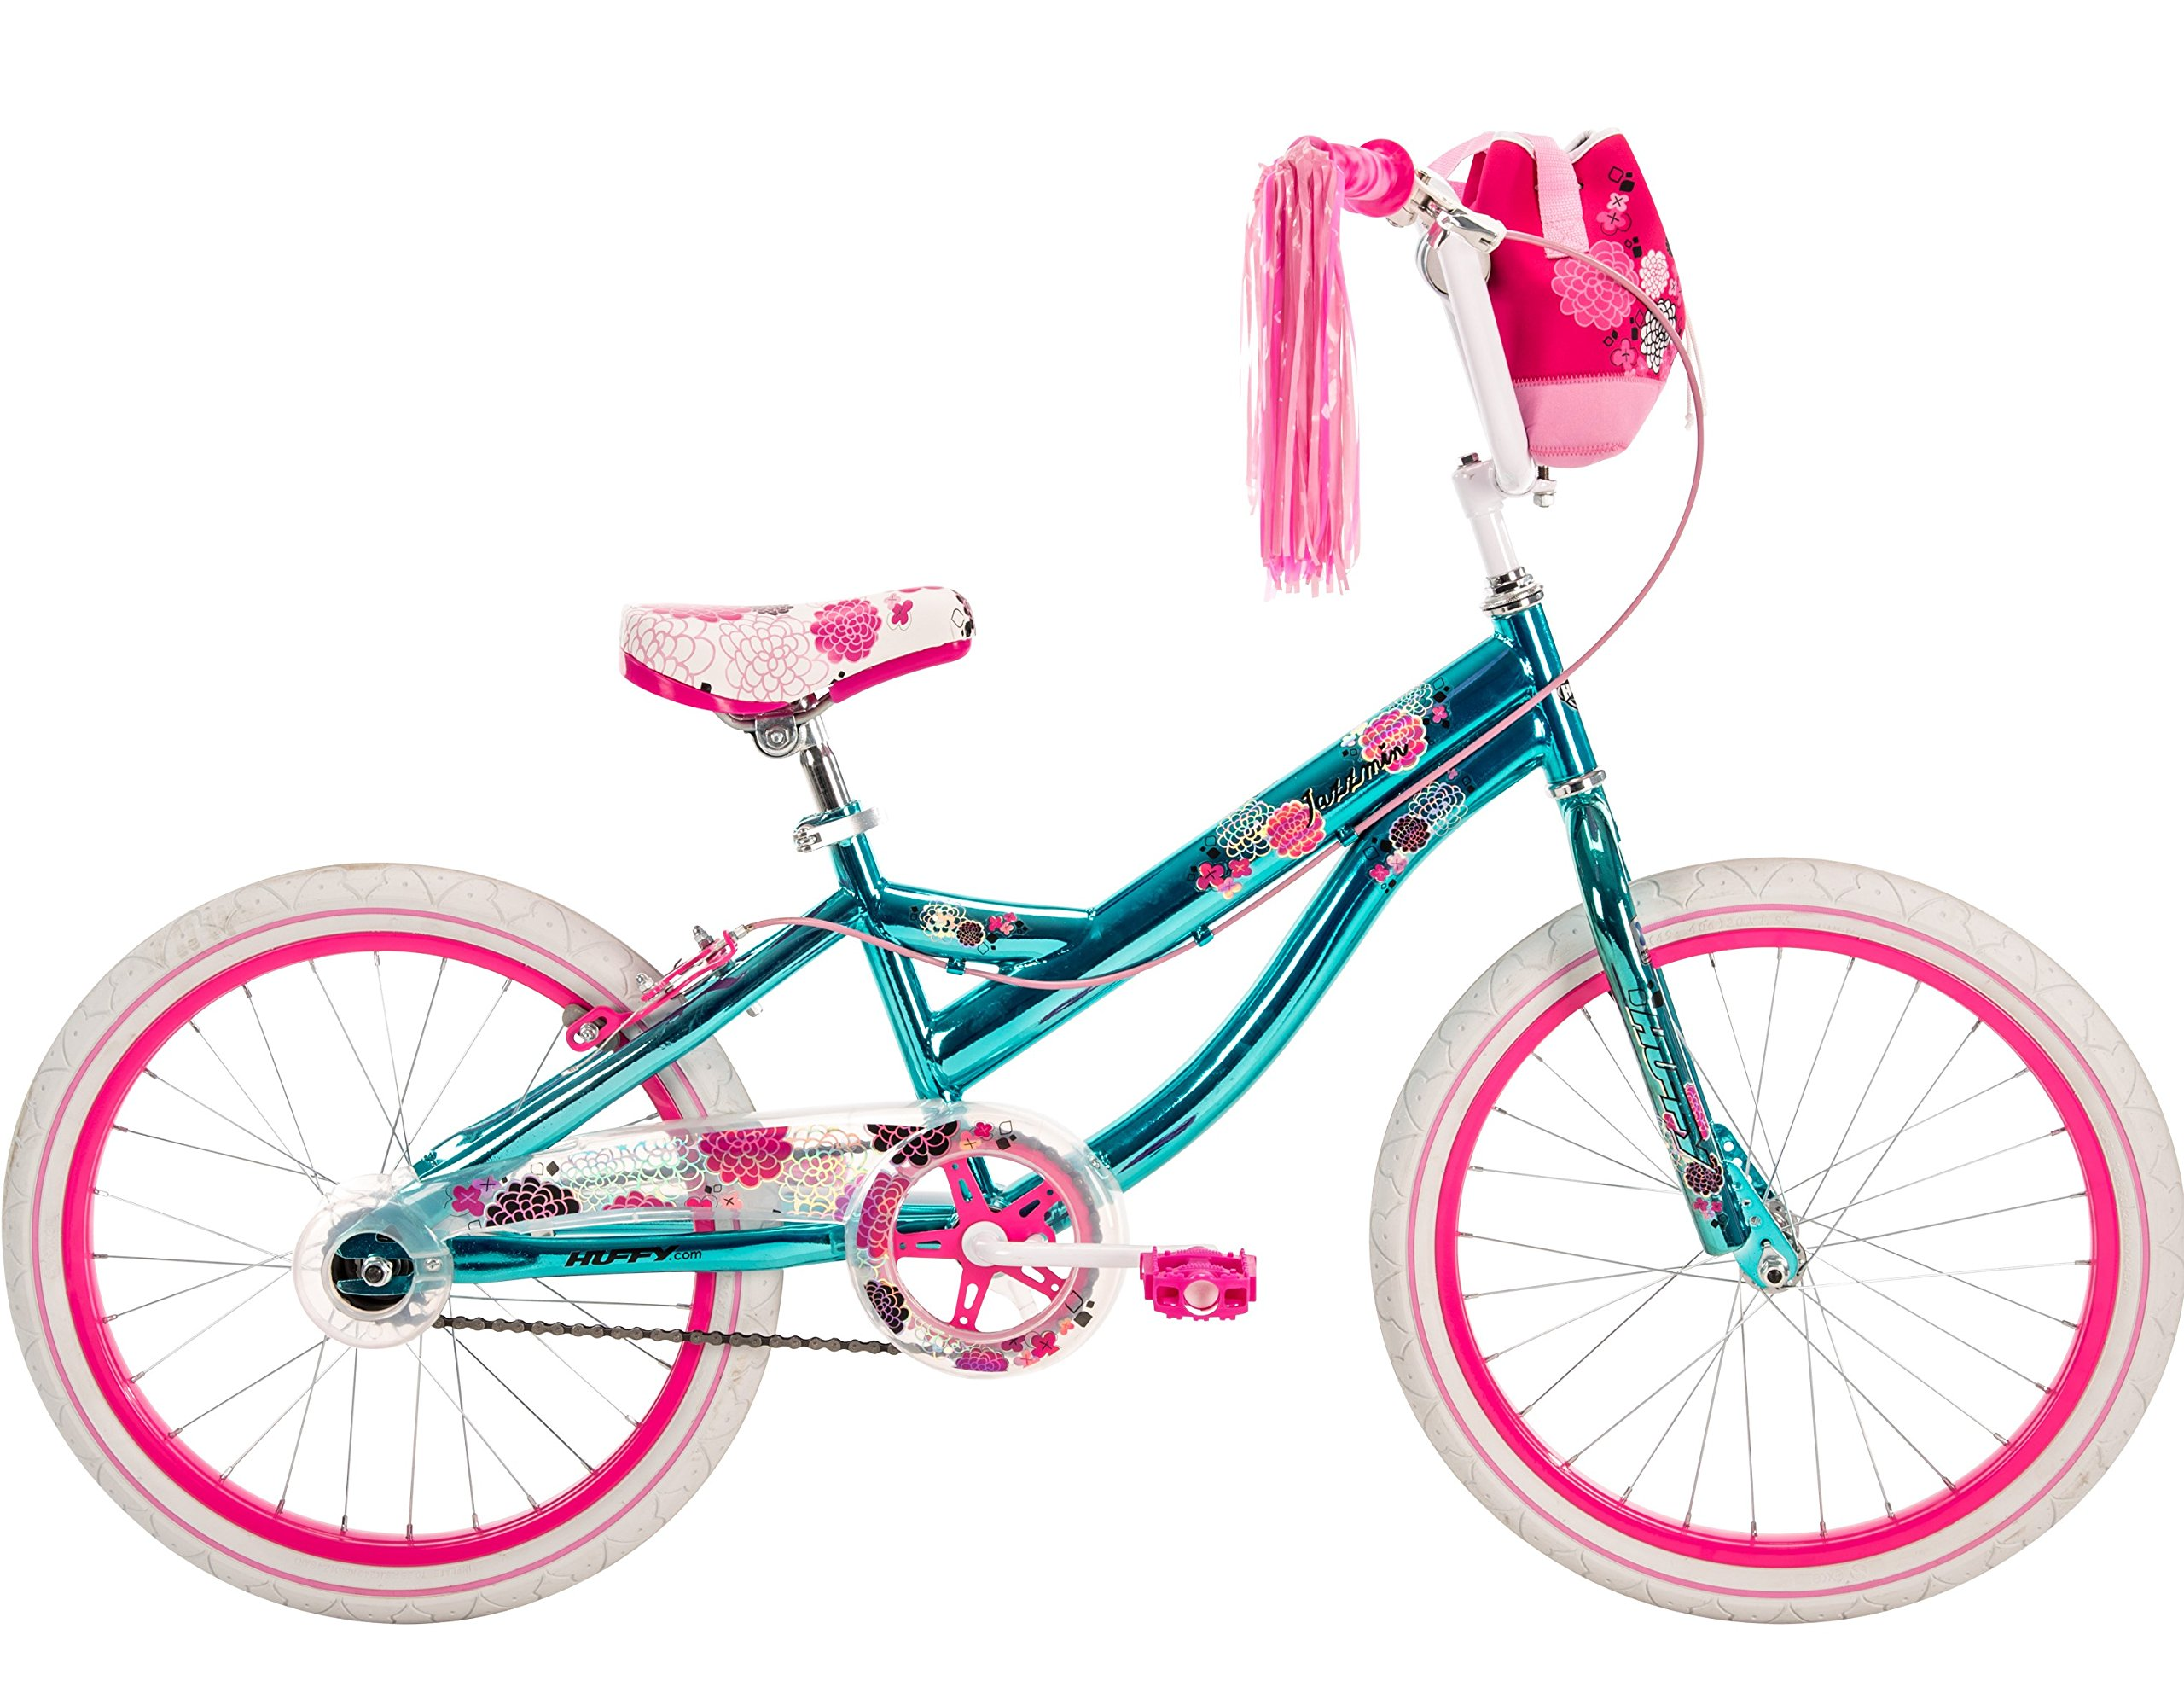 20'' Huffy Jazzmin Girls' Bike, Ages 5-9, Rider Height 44-56'' by Huffy (Image #1)